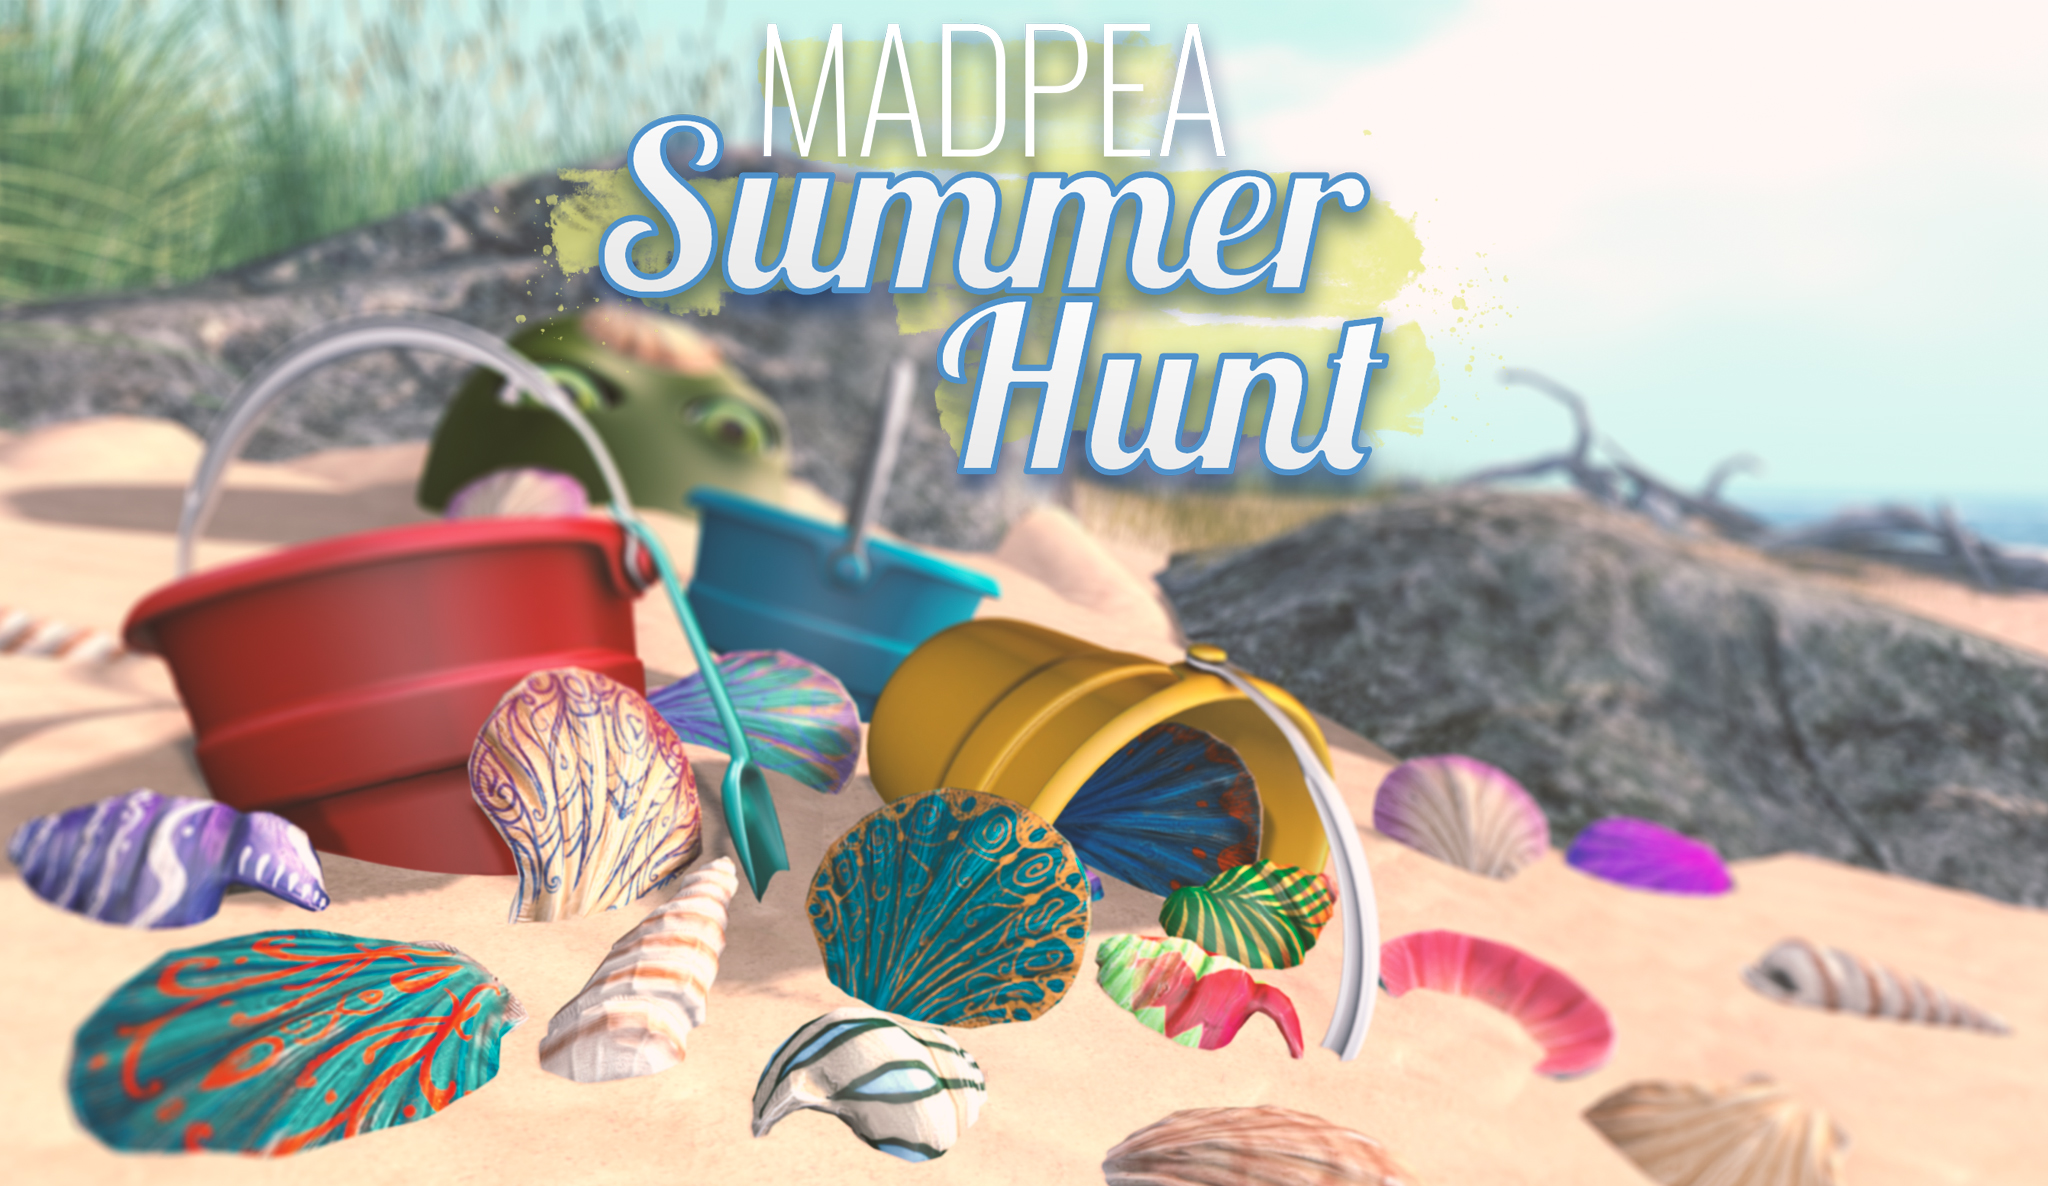 Time to Get Involved in the MadPea Summer Hunt!